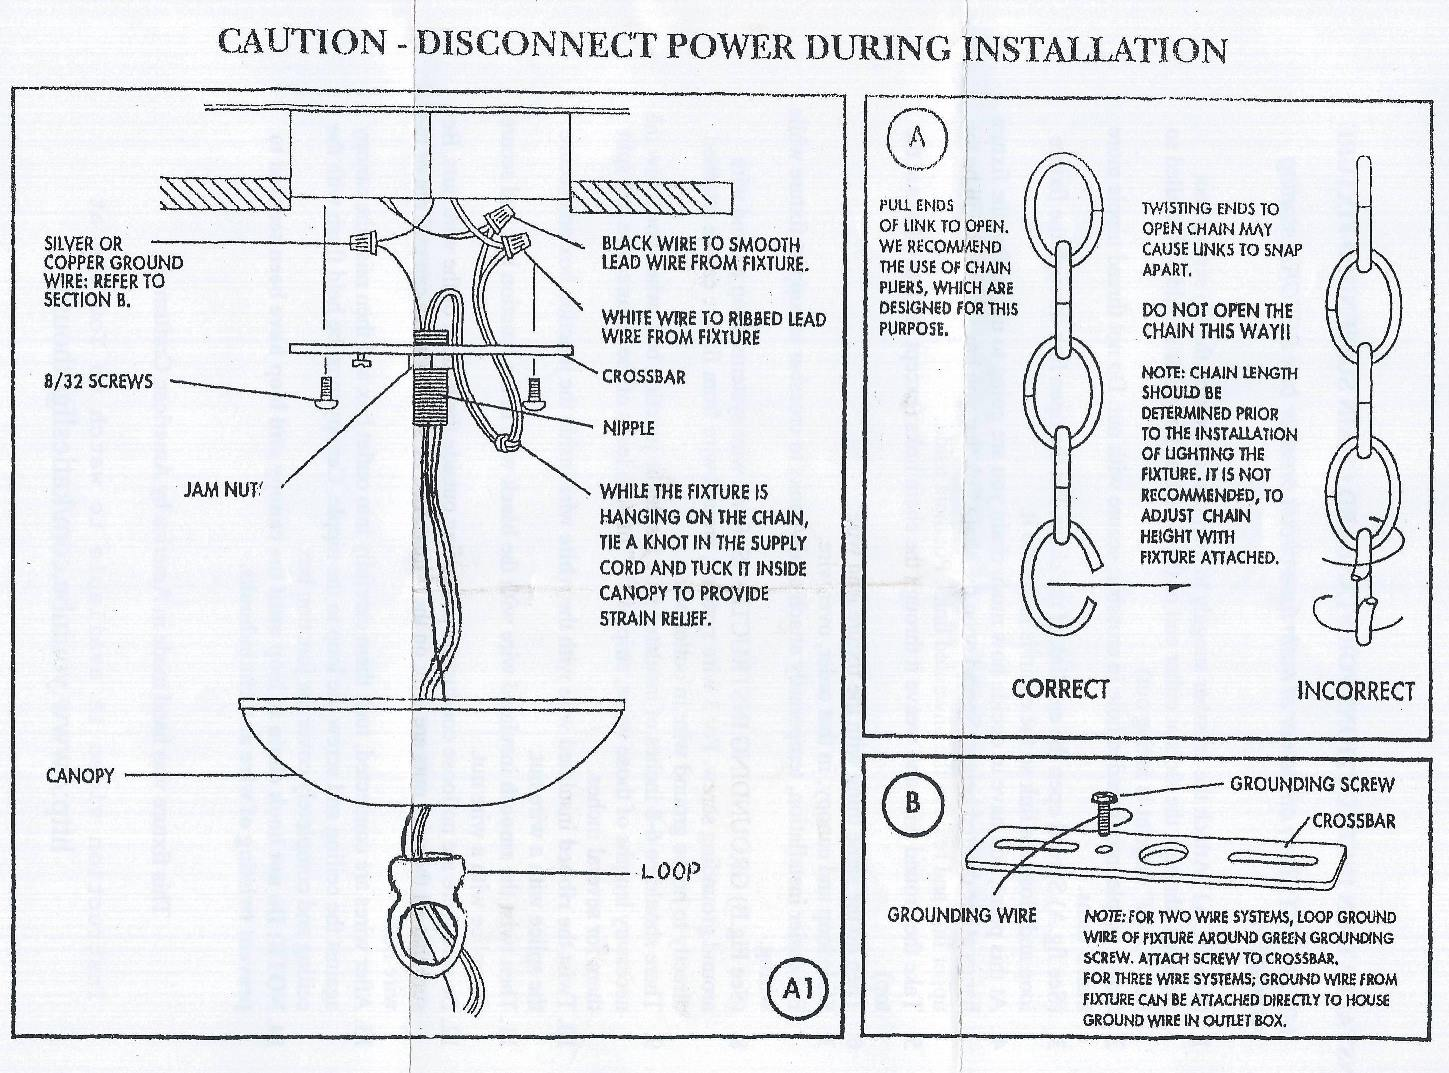 hight resolution of chandelier step by step installation guidechandelier fixture wiring diagram 13